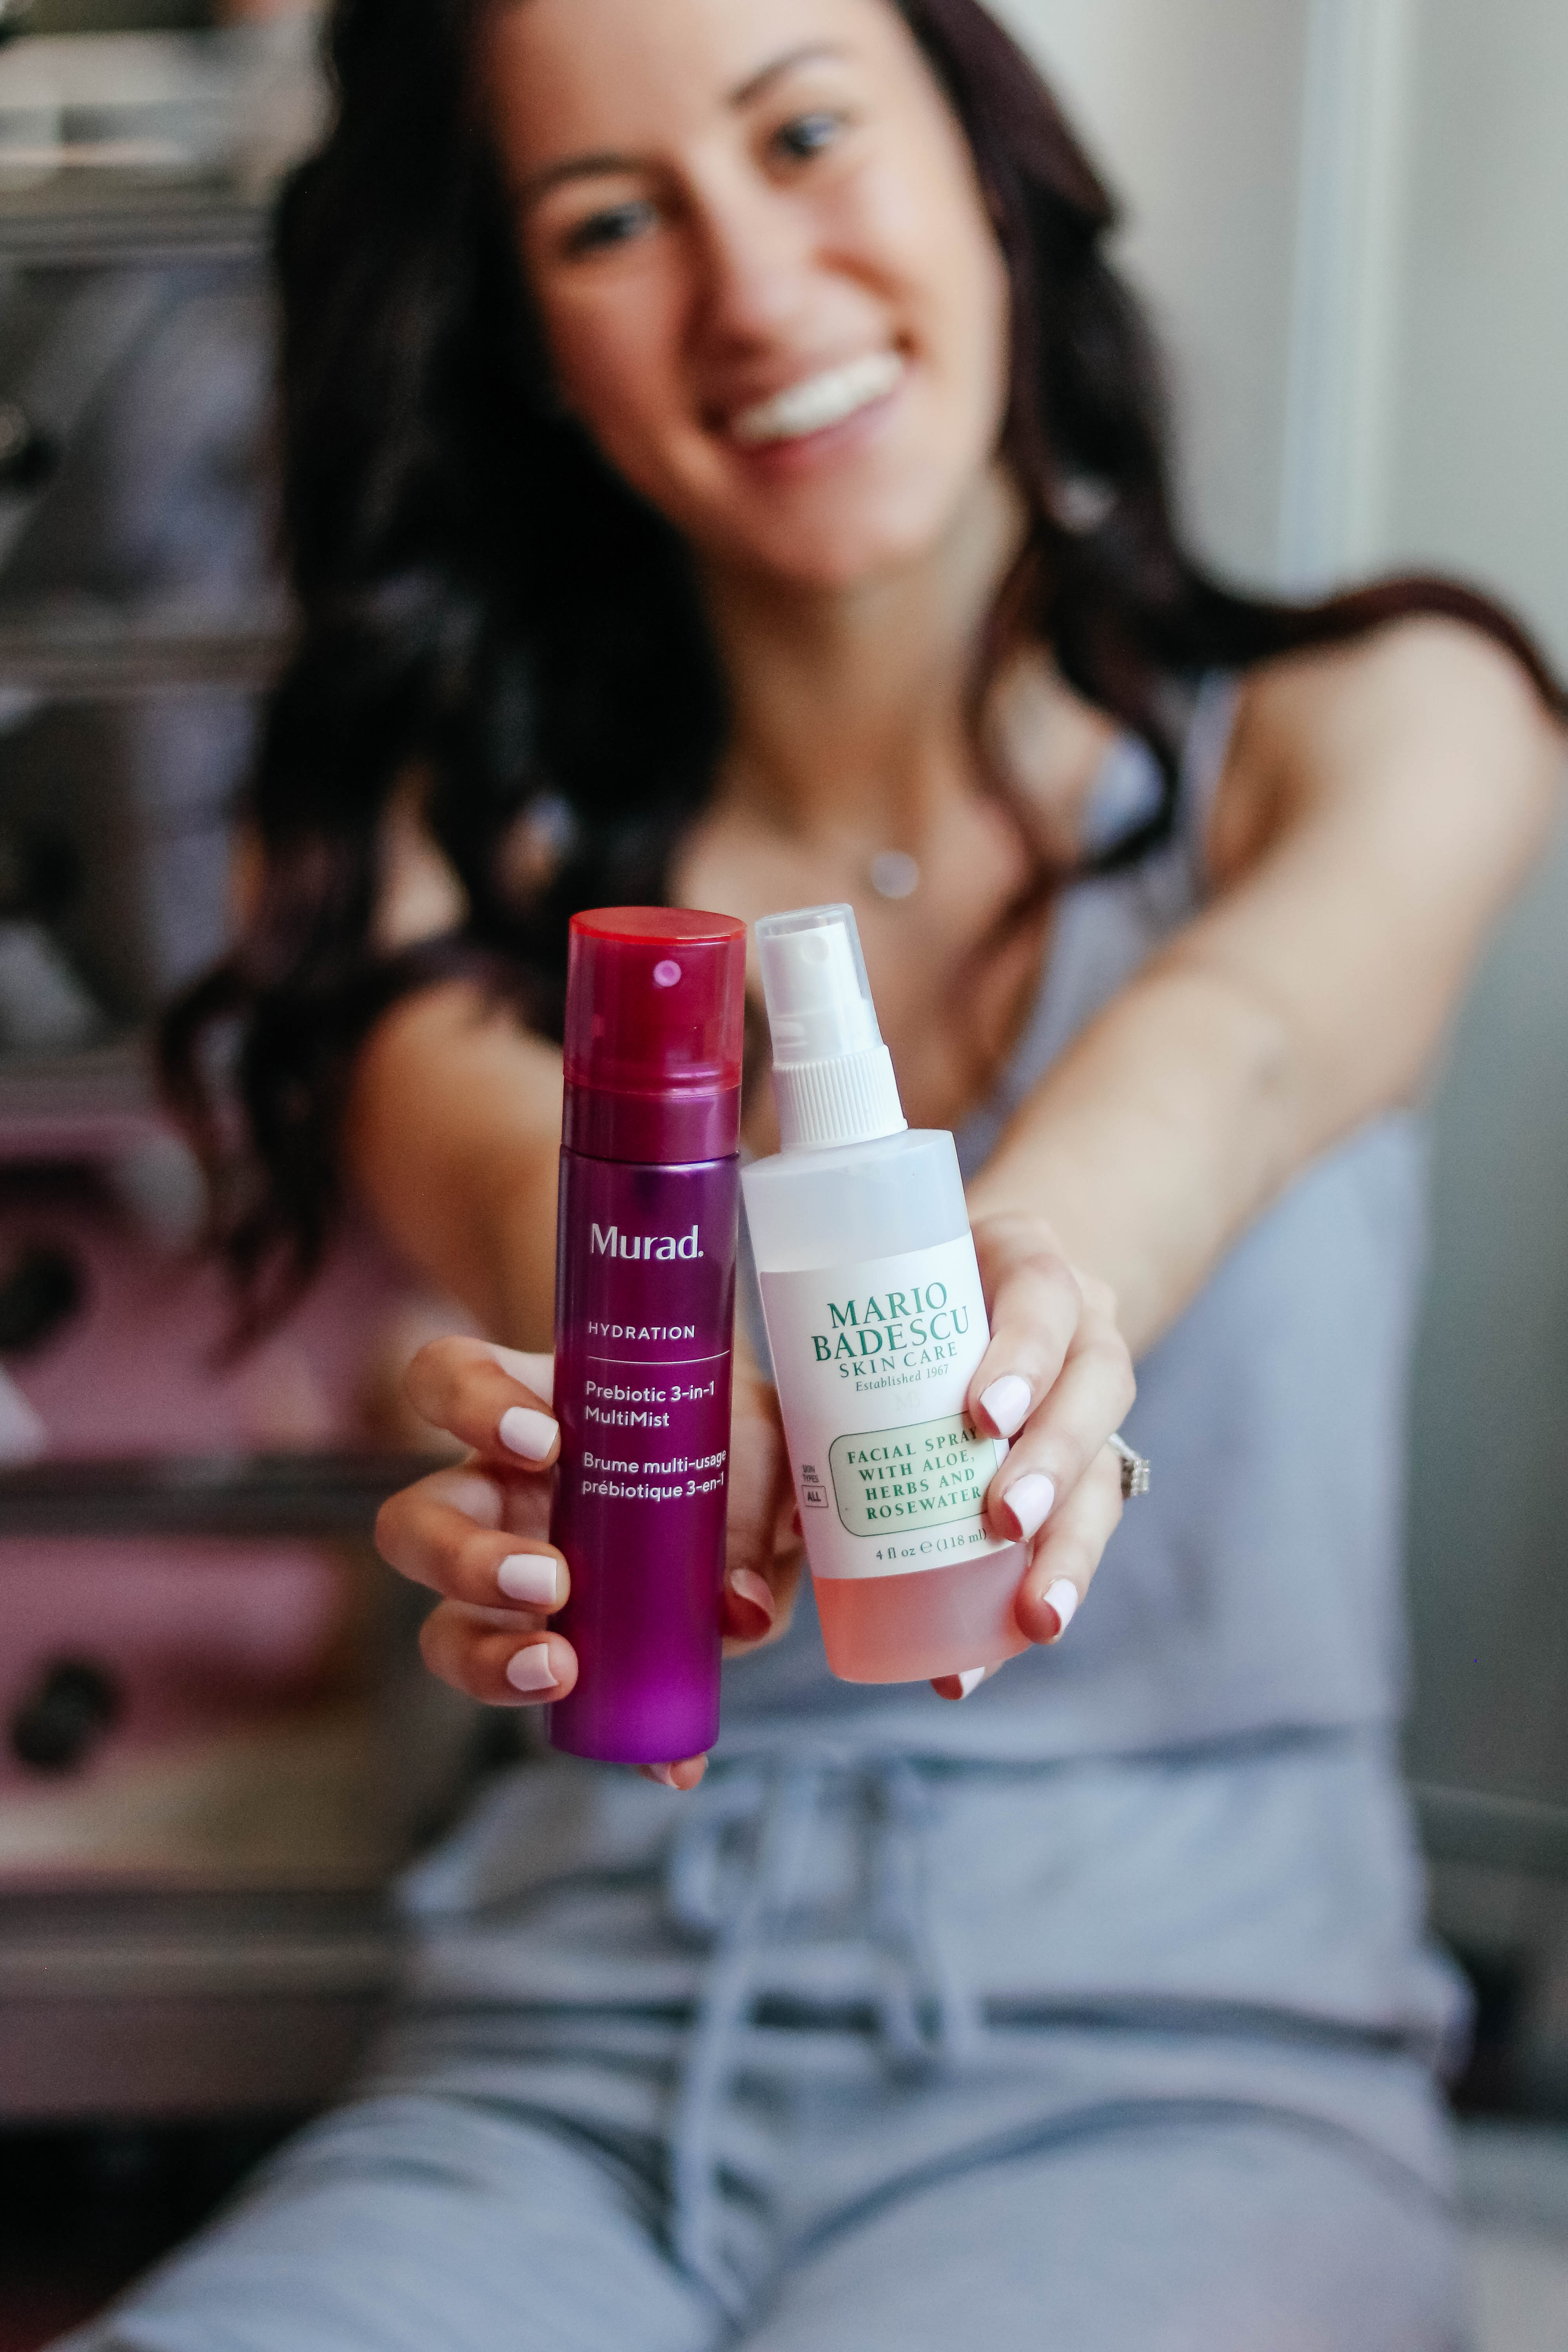 Are you on the Facial Sprays train yet? Sharing some favorite face mists and why you need them in your skincare routine!